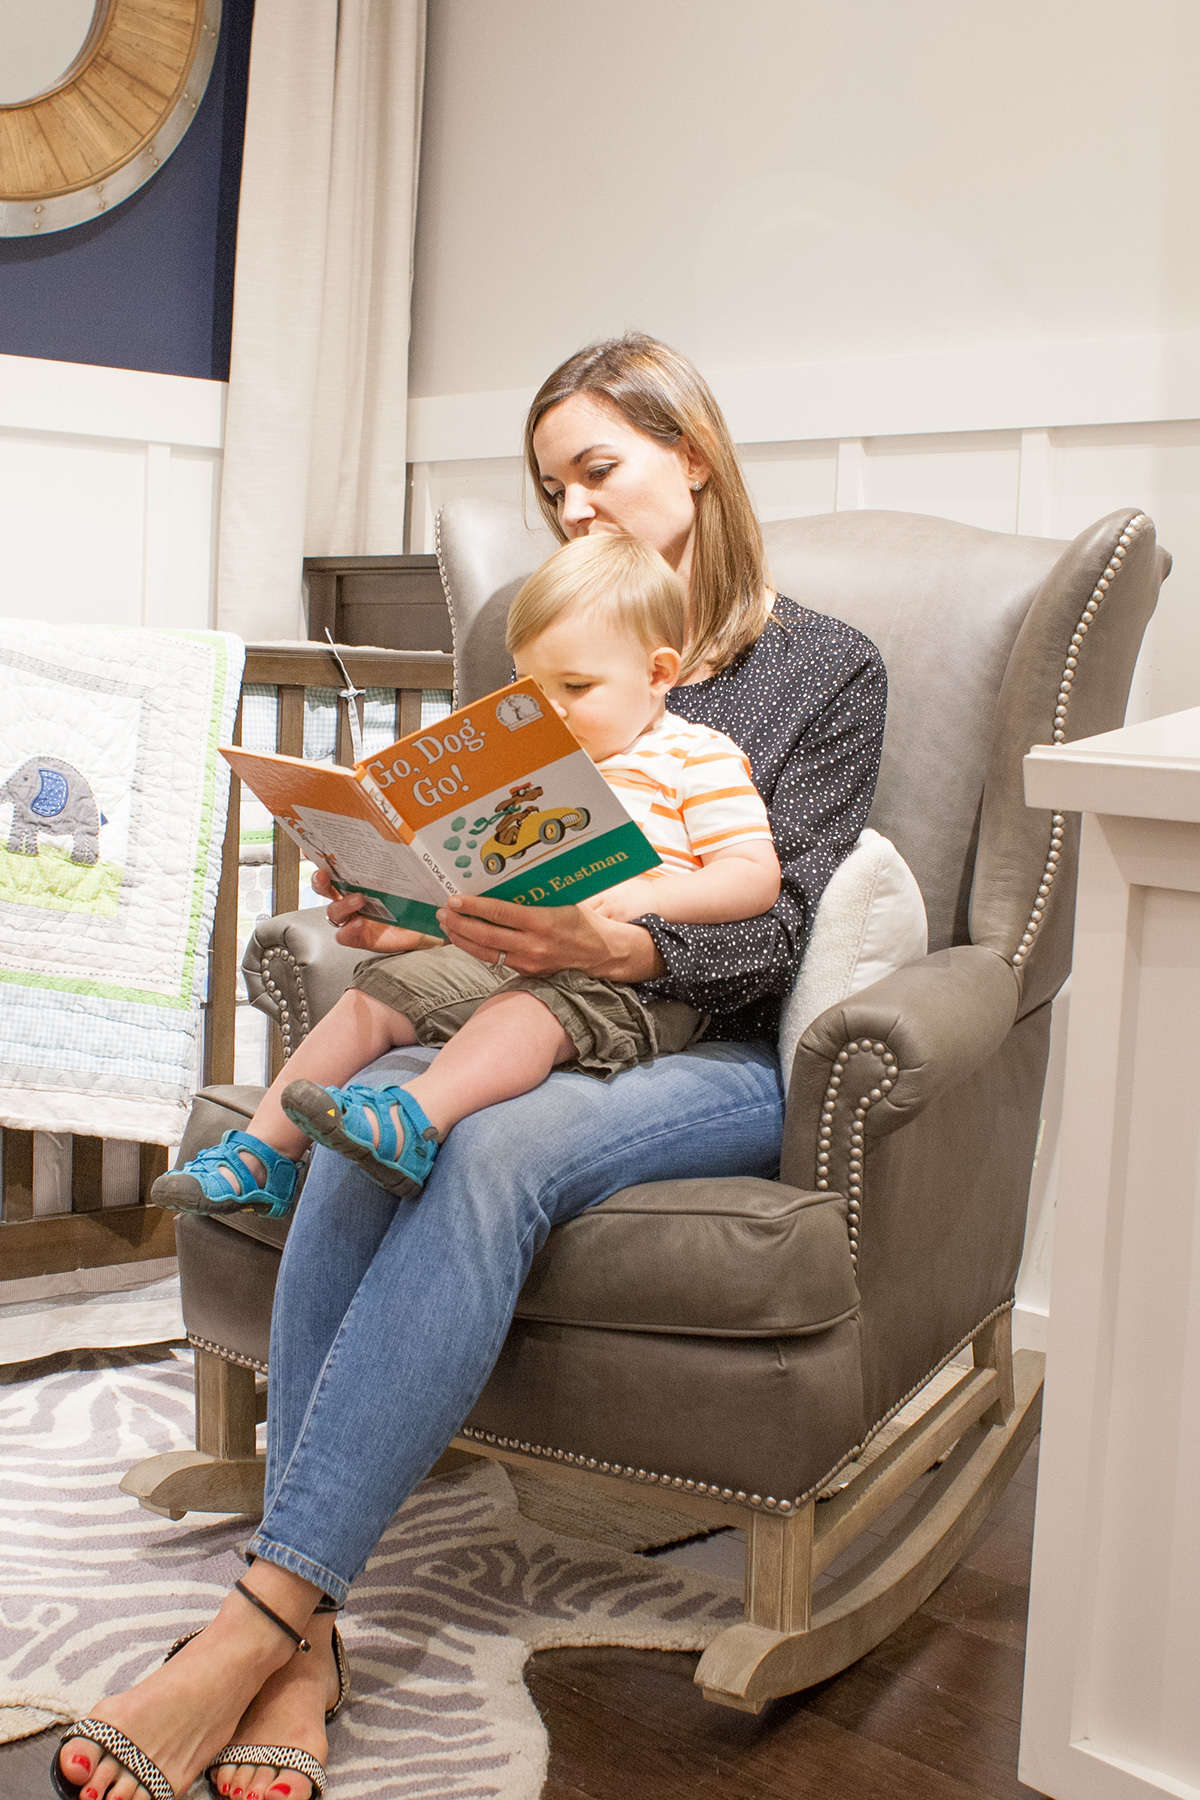 Rocker Reviews West Elm Gliders And Rockers - Lay Baby Lay